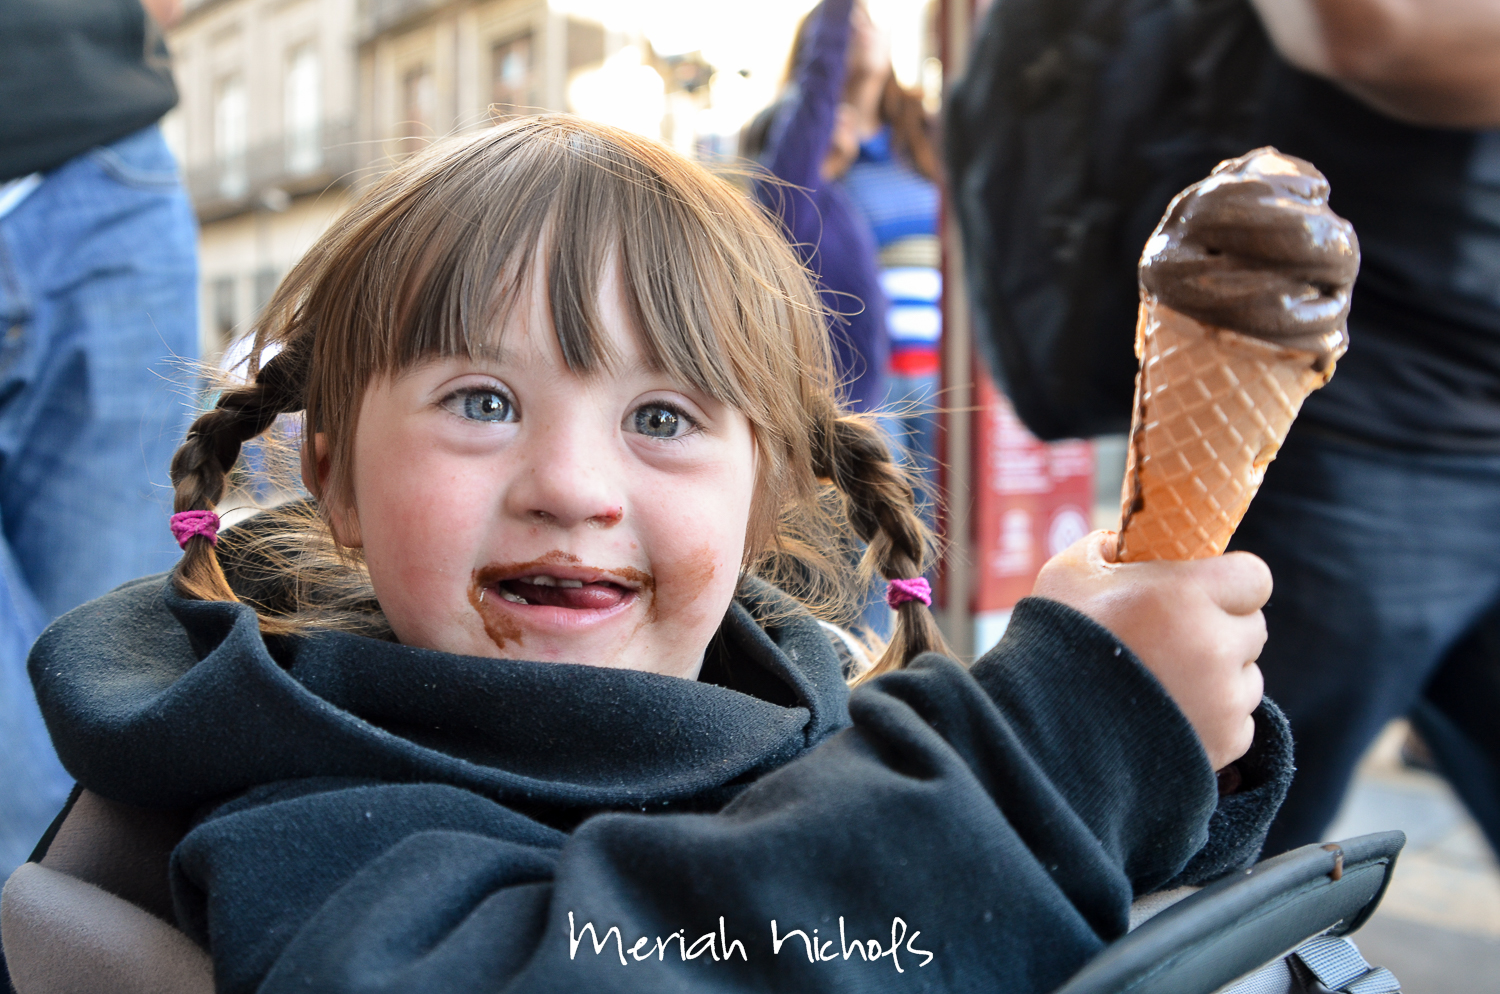 Moxie, child with Down Syndrome, holding ice cream cone